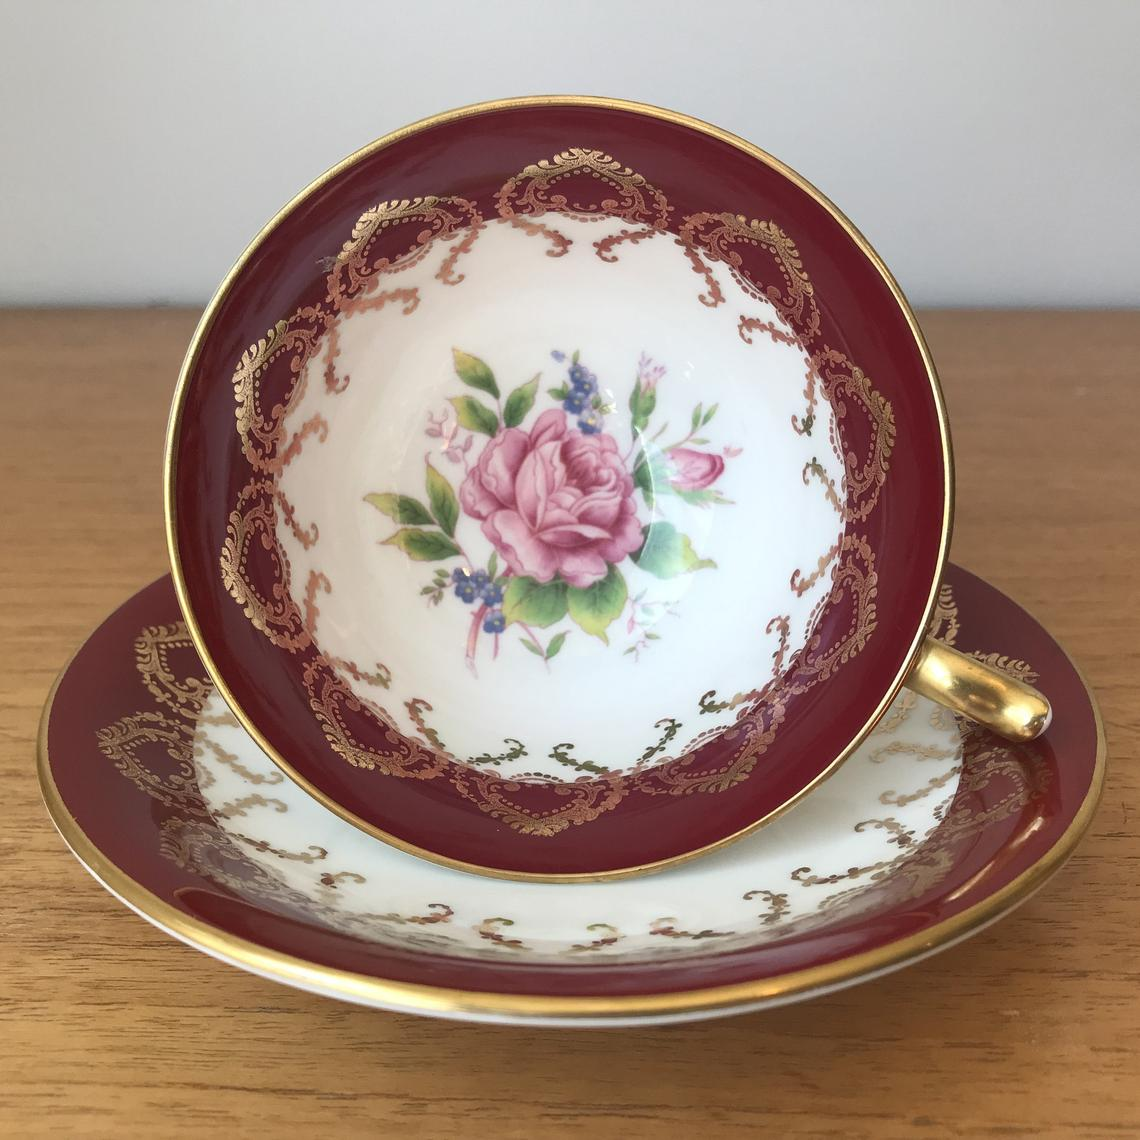 Red Aynsley China Tea Cup and Saucer, Pink Rose Teacup and Saucer